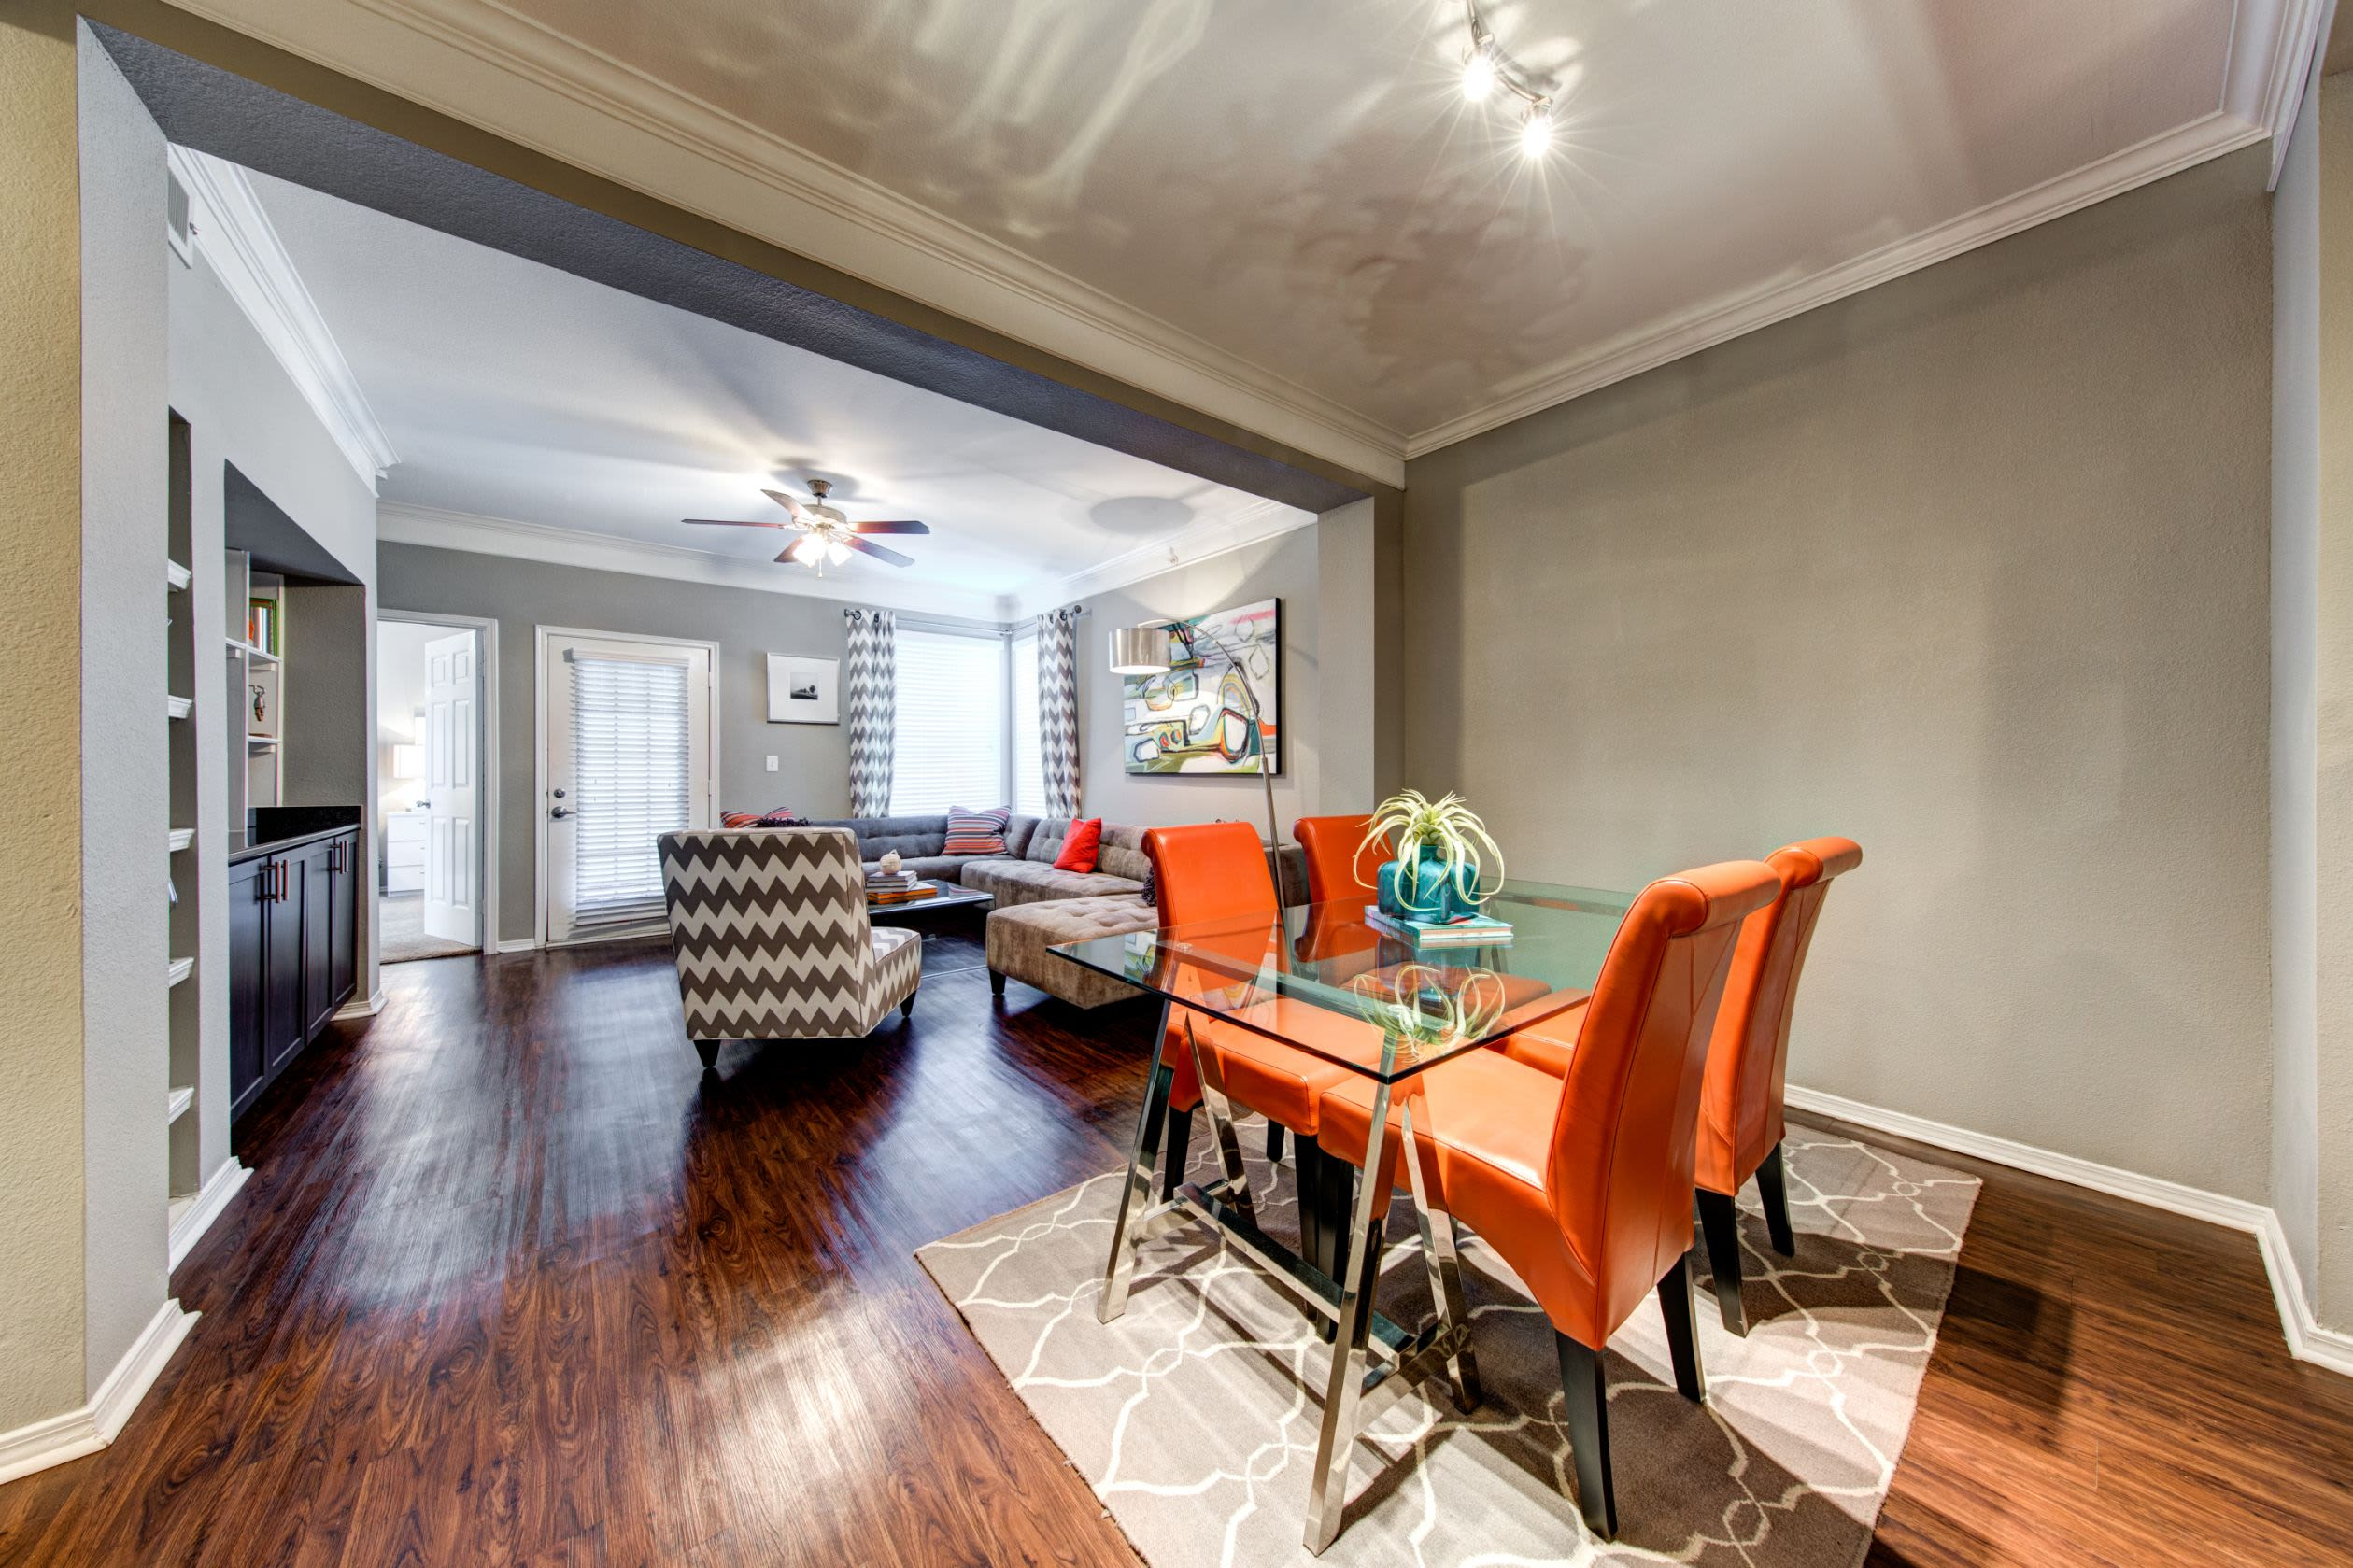 Dining room with wood floors and a rug under the table at Marquis on Gaston in Dallas, Texas